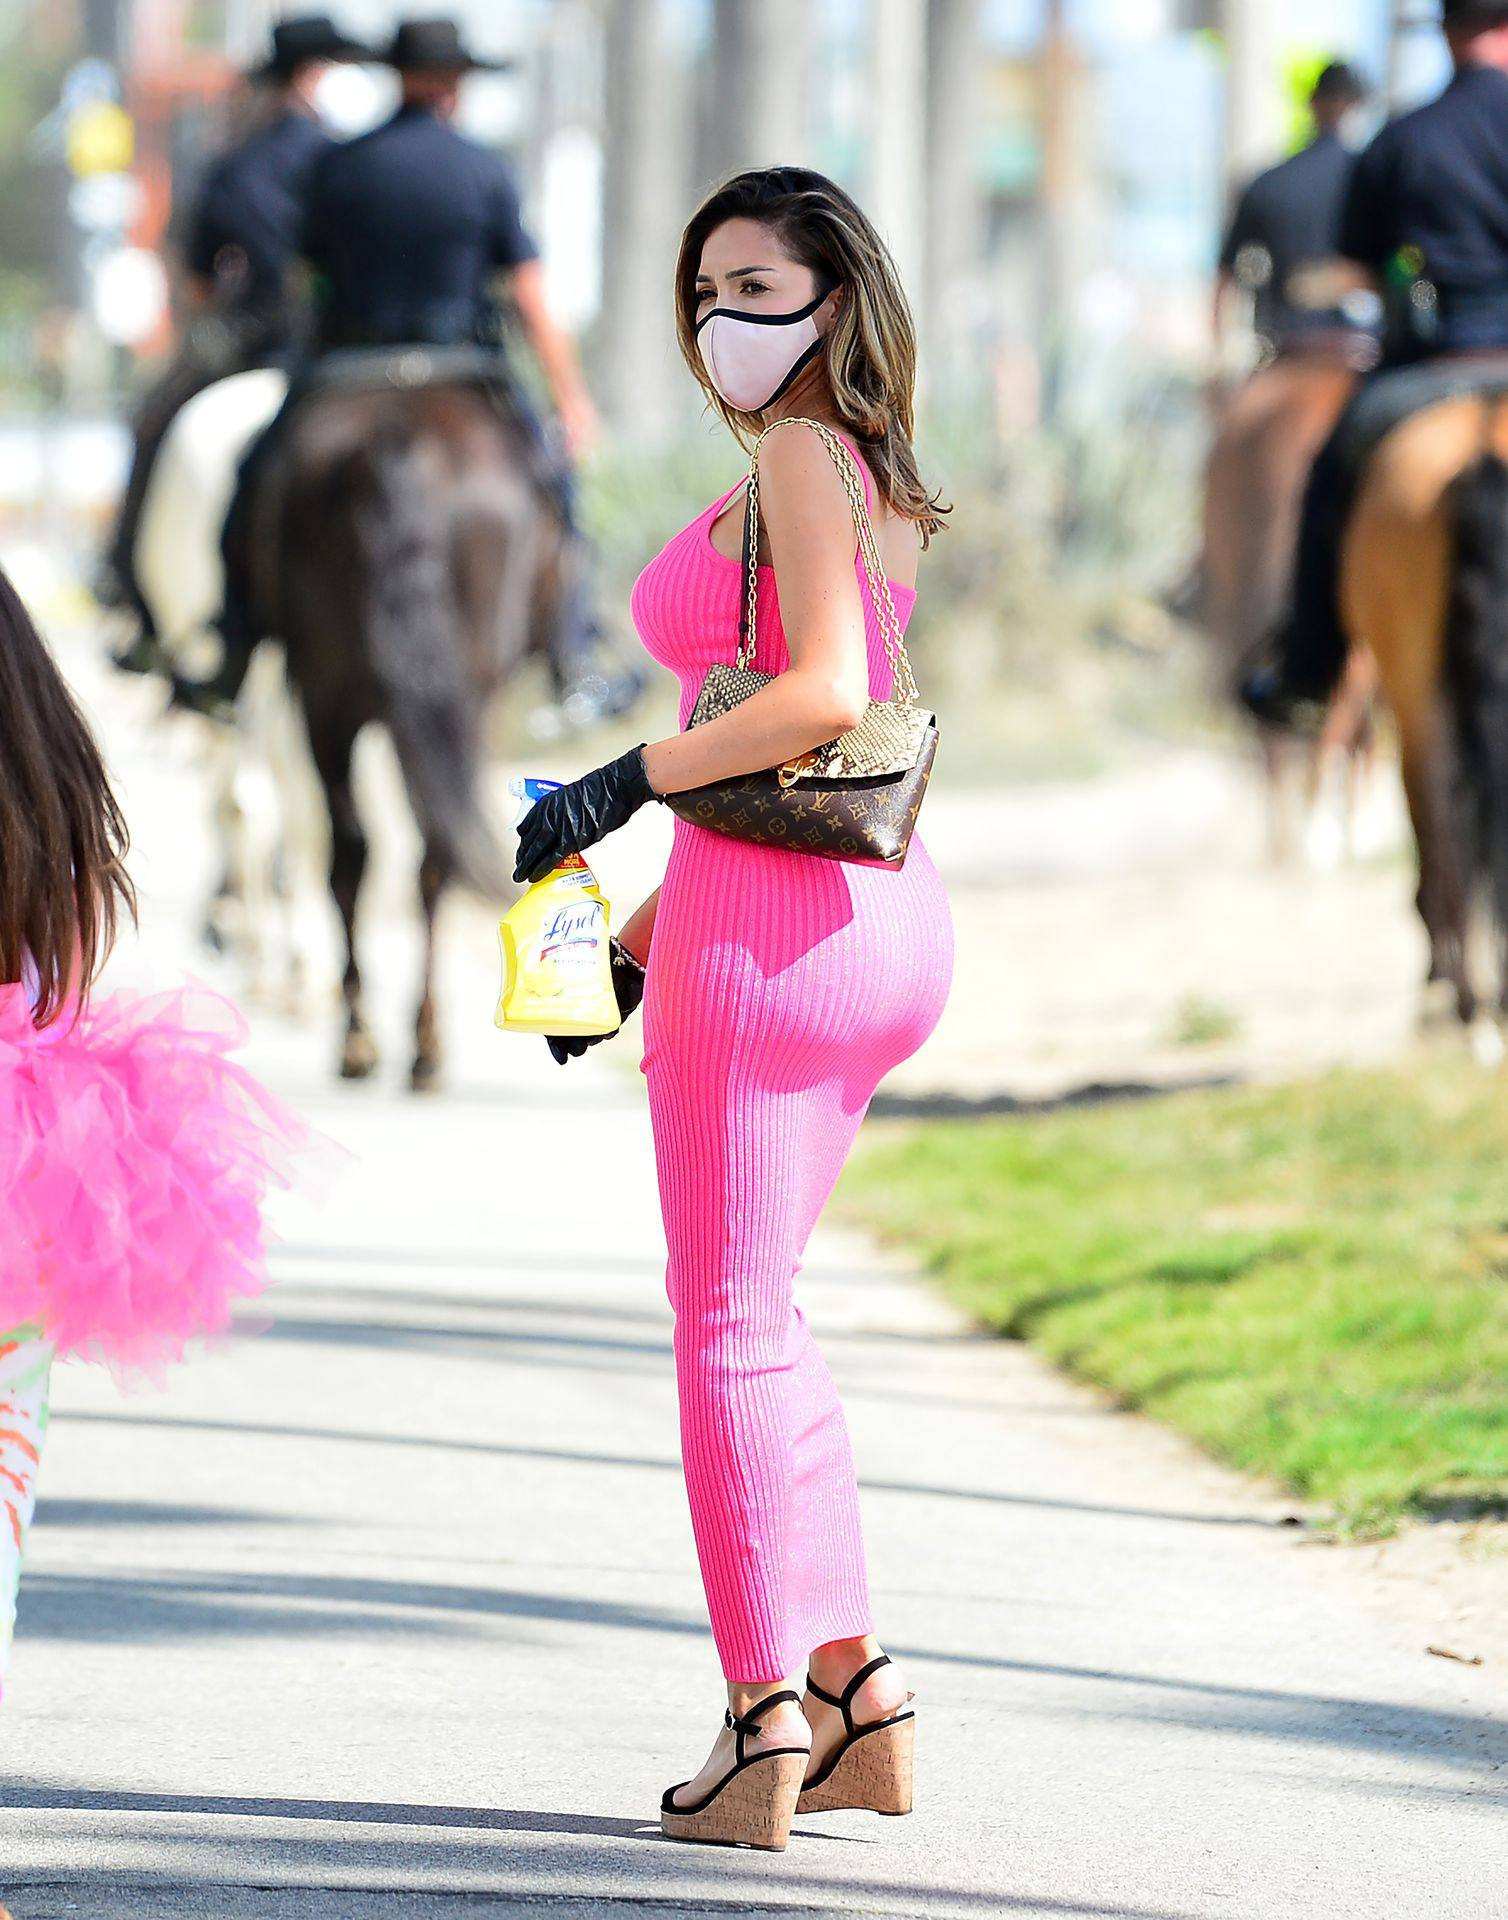 Farrah Abraham – Sexy Curvy Body In A Pink Dress Out In Los Angeles 0001